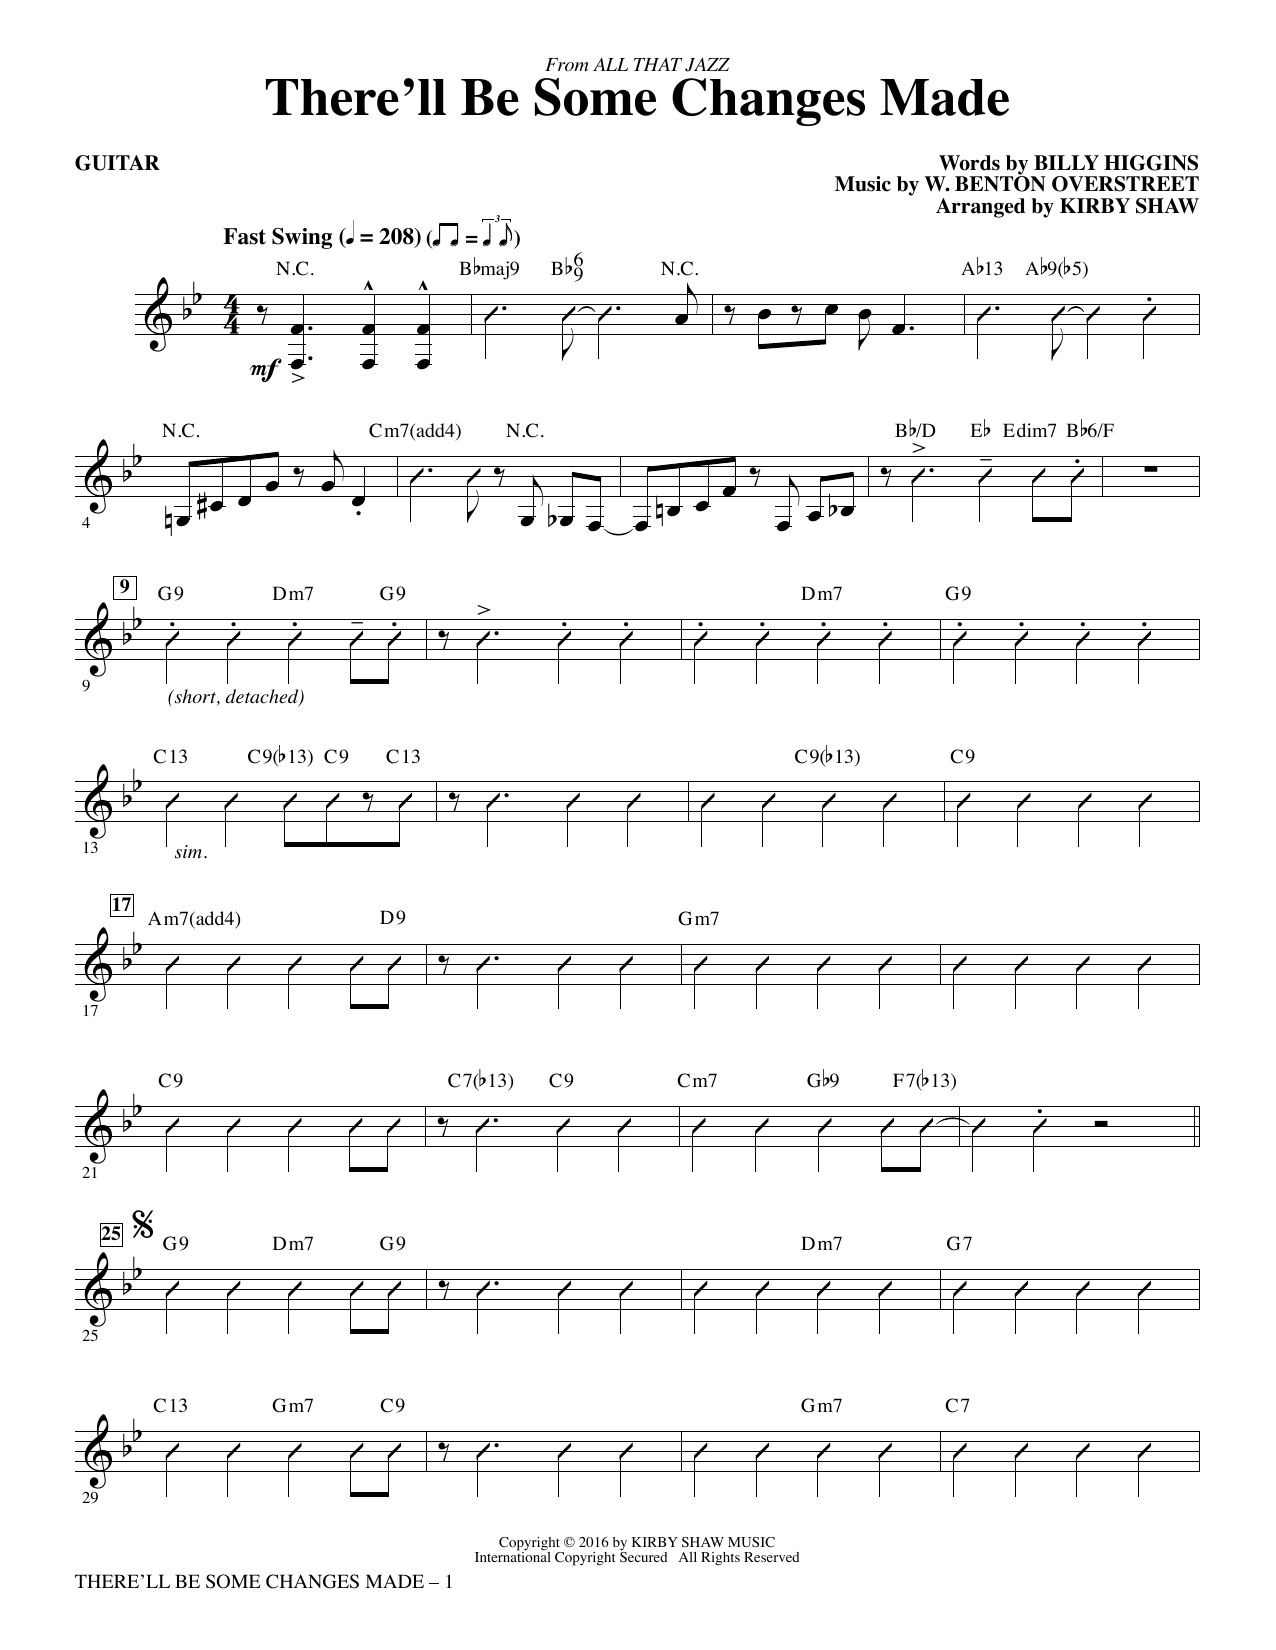 There'll Be Some Changes Made - Guitar Sheet Music